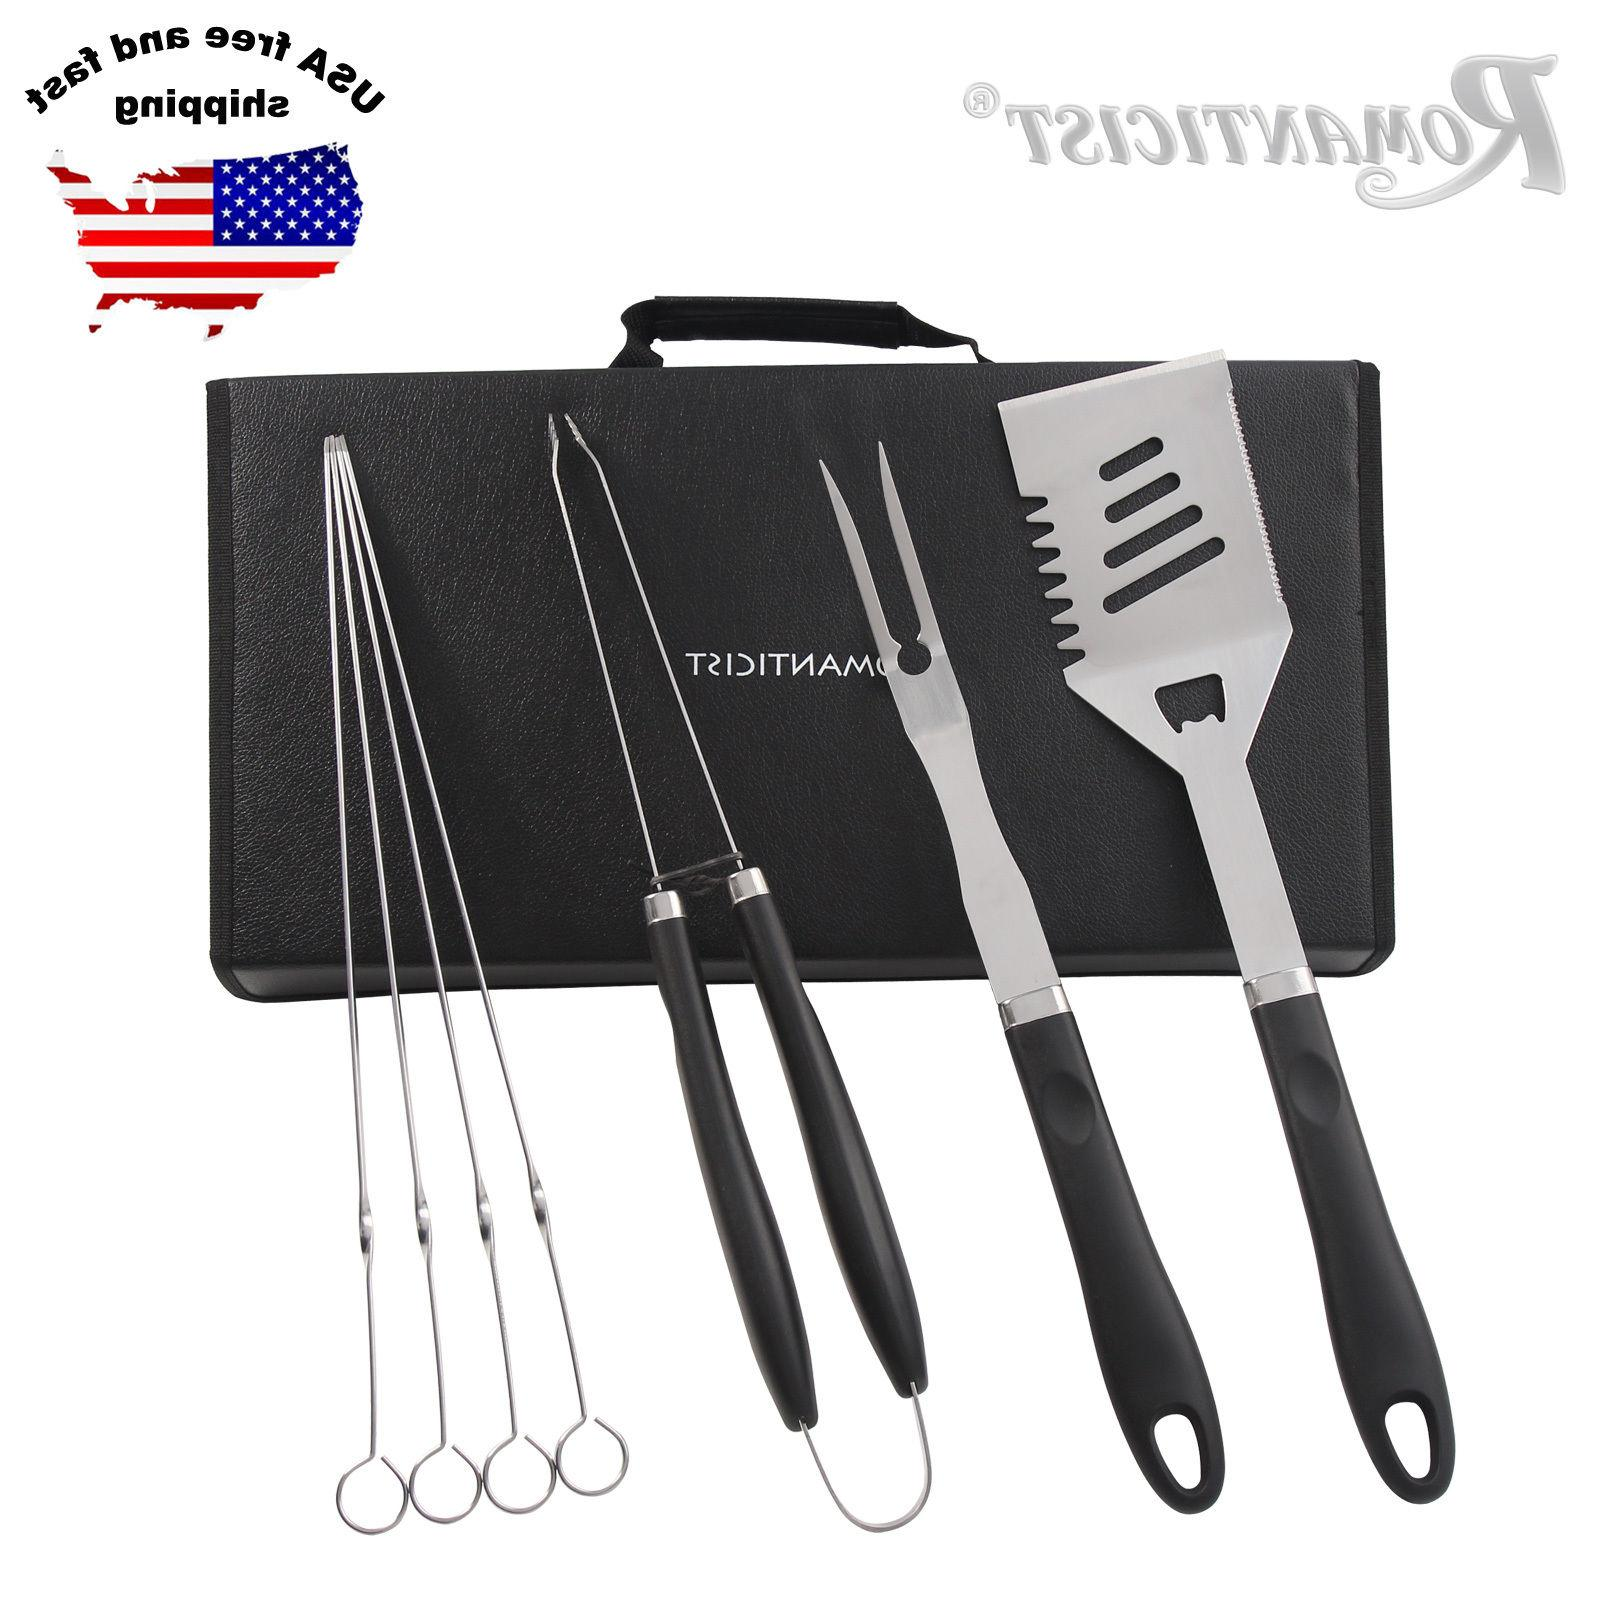 7 Piece Grill Tools set Stainless Steel BBQ Tools Set Barbec